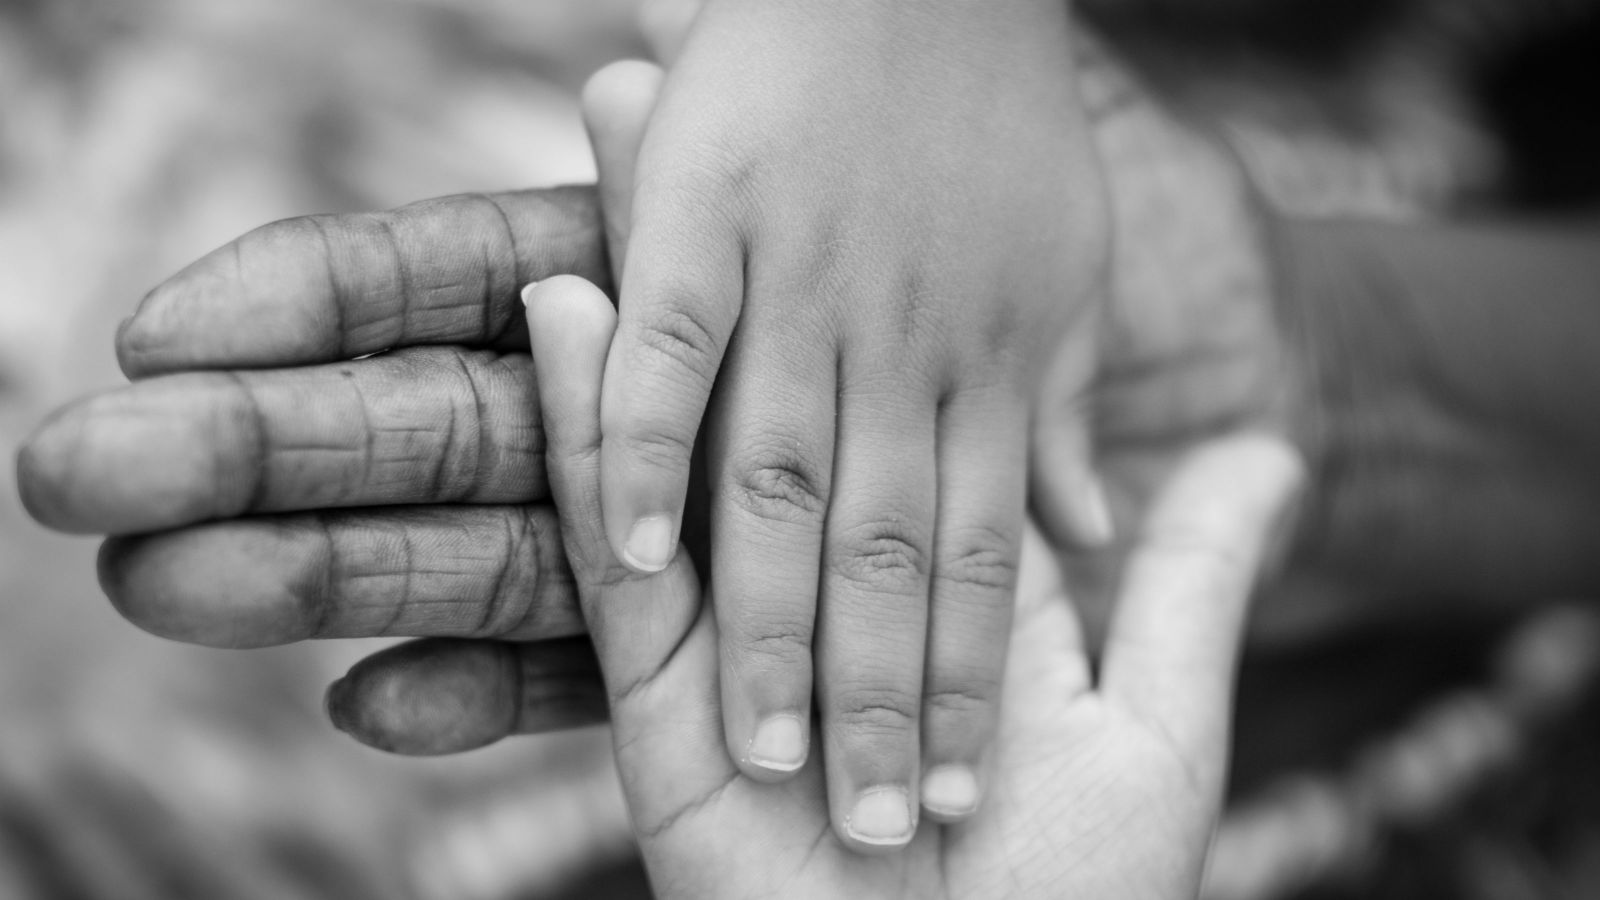 Two adult hands and a child's hand together